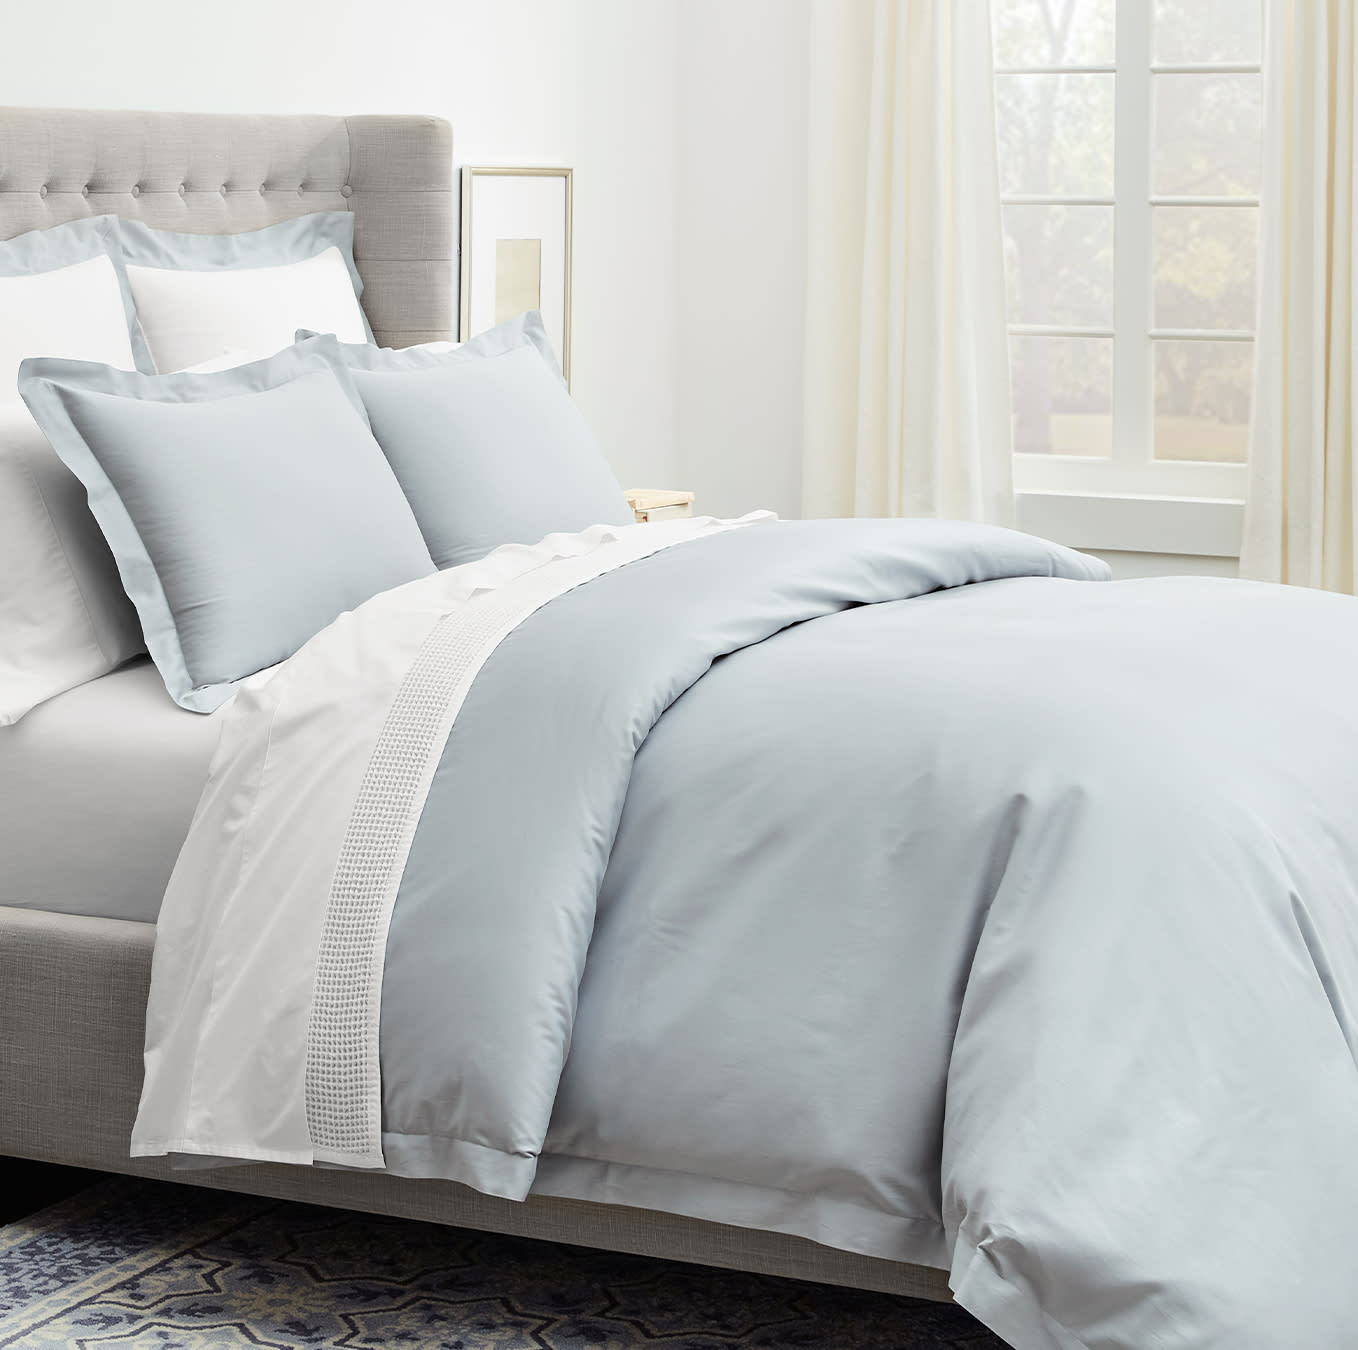 Boll & Branch Duvet set in the beautiful peaceful blue color: shore. #duvet #coastal #lightblue #beachybedding